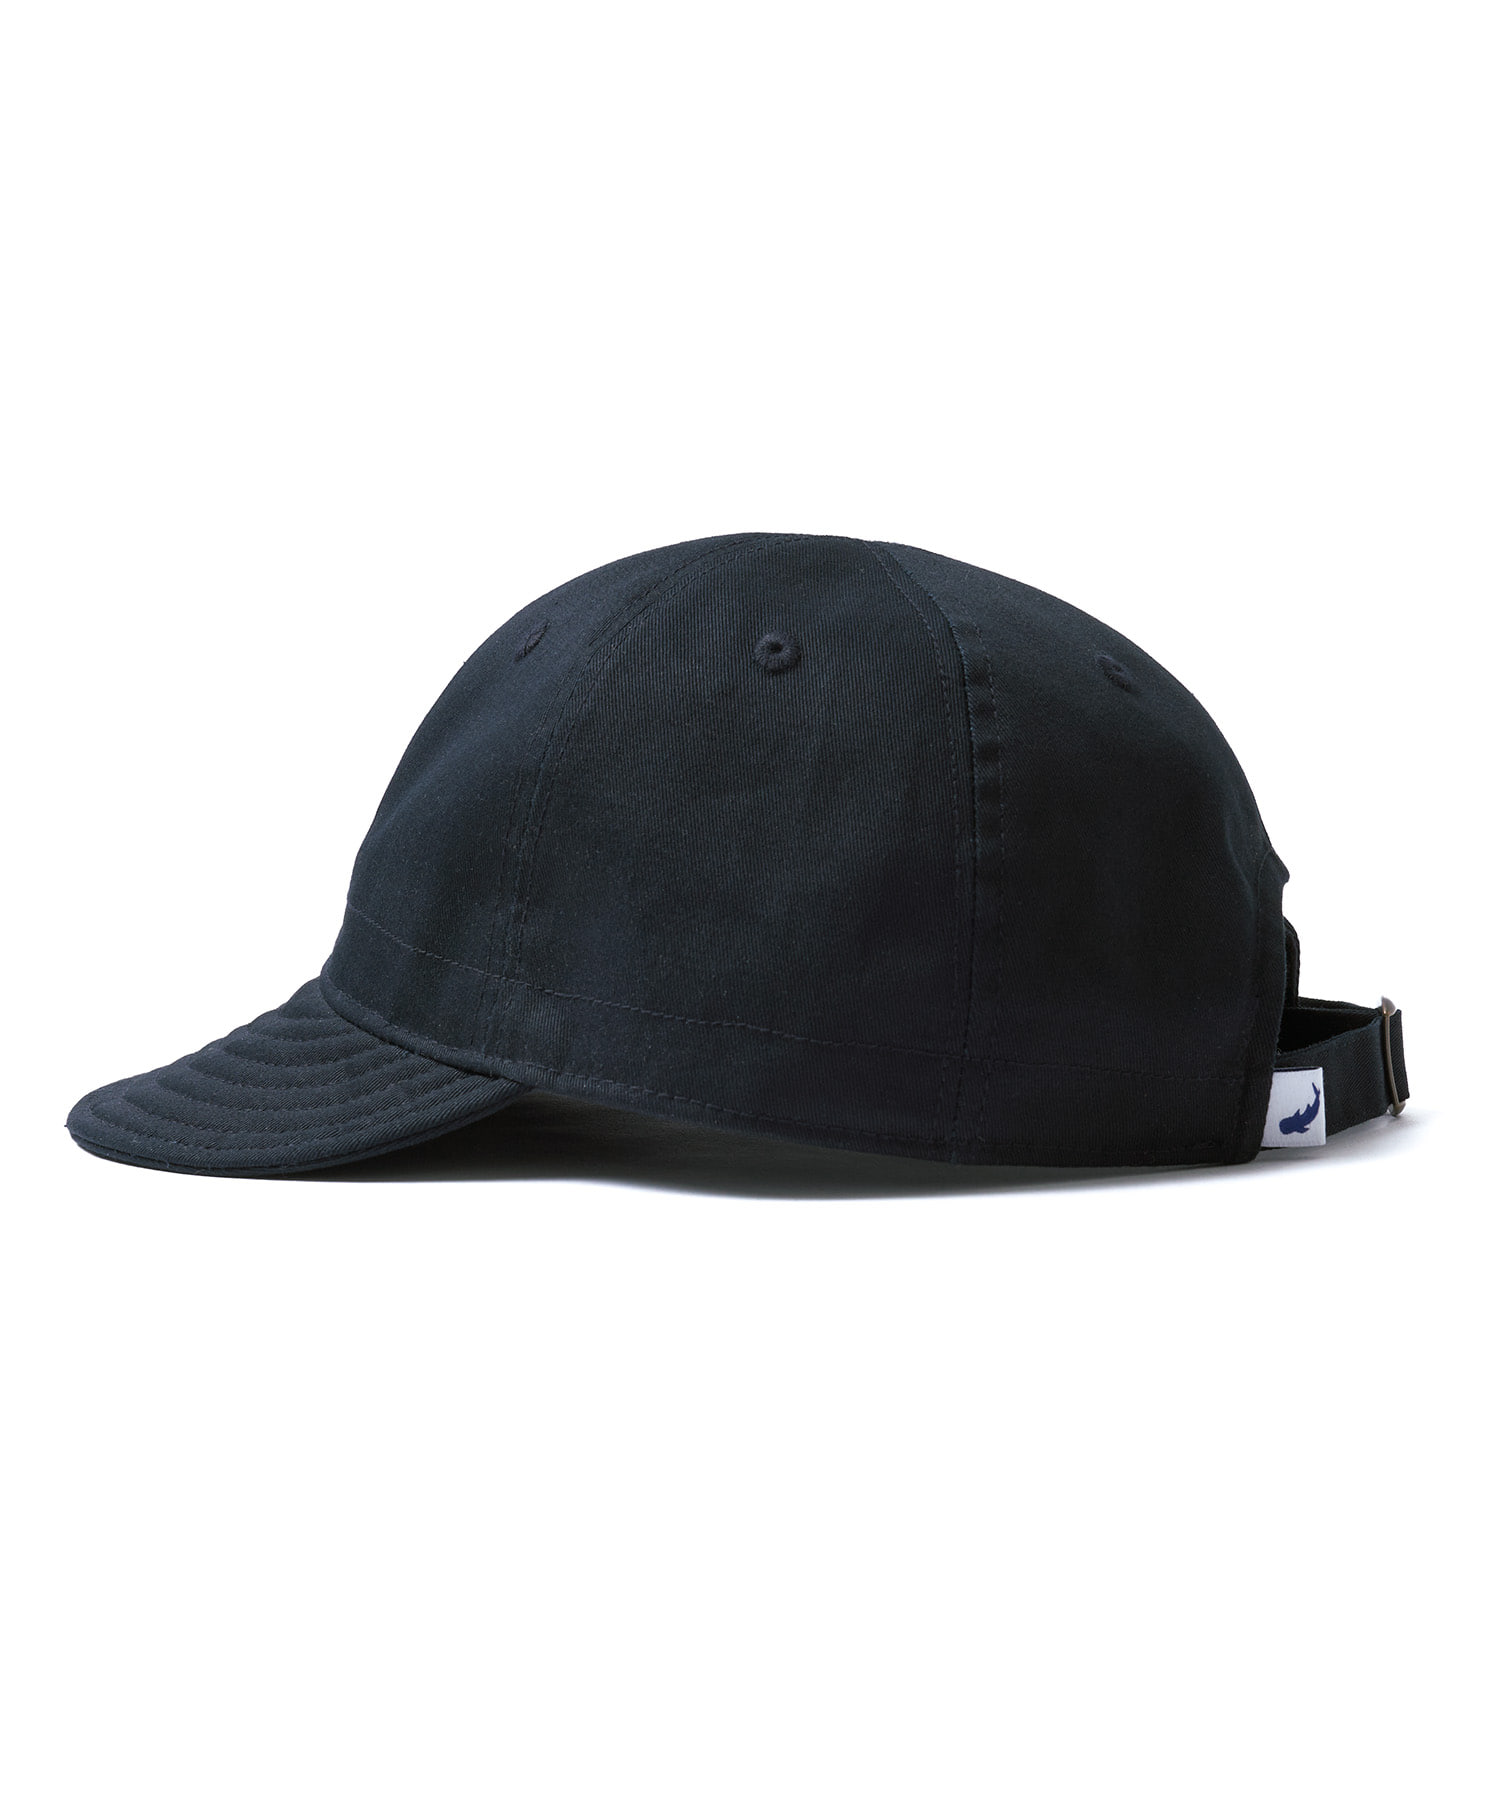 CAP-01 A-3 Mechanic Cap_NV